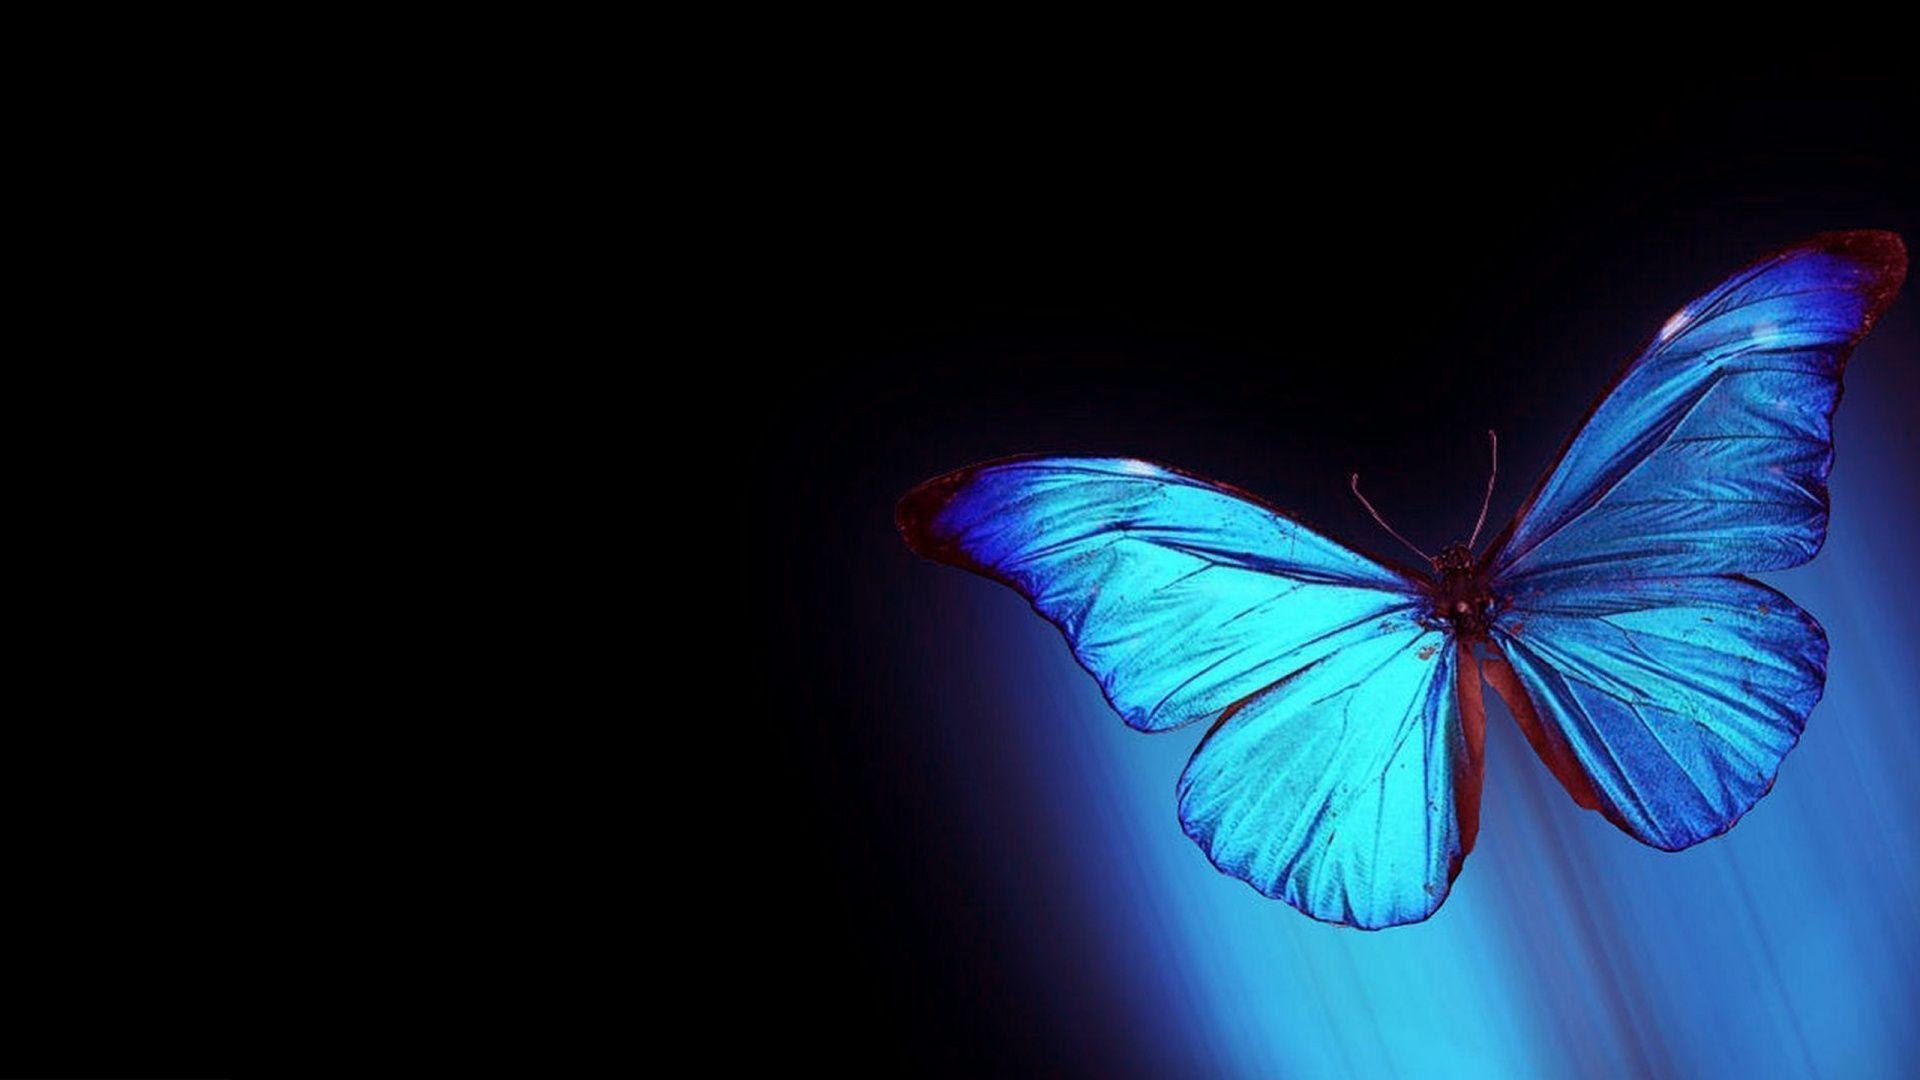 Abstract Butterfly Wallpapers - Wallpaper Cave